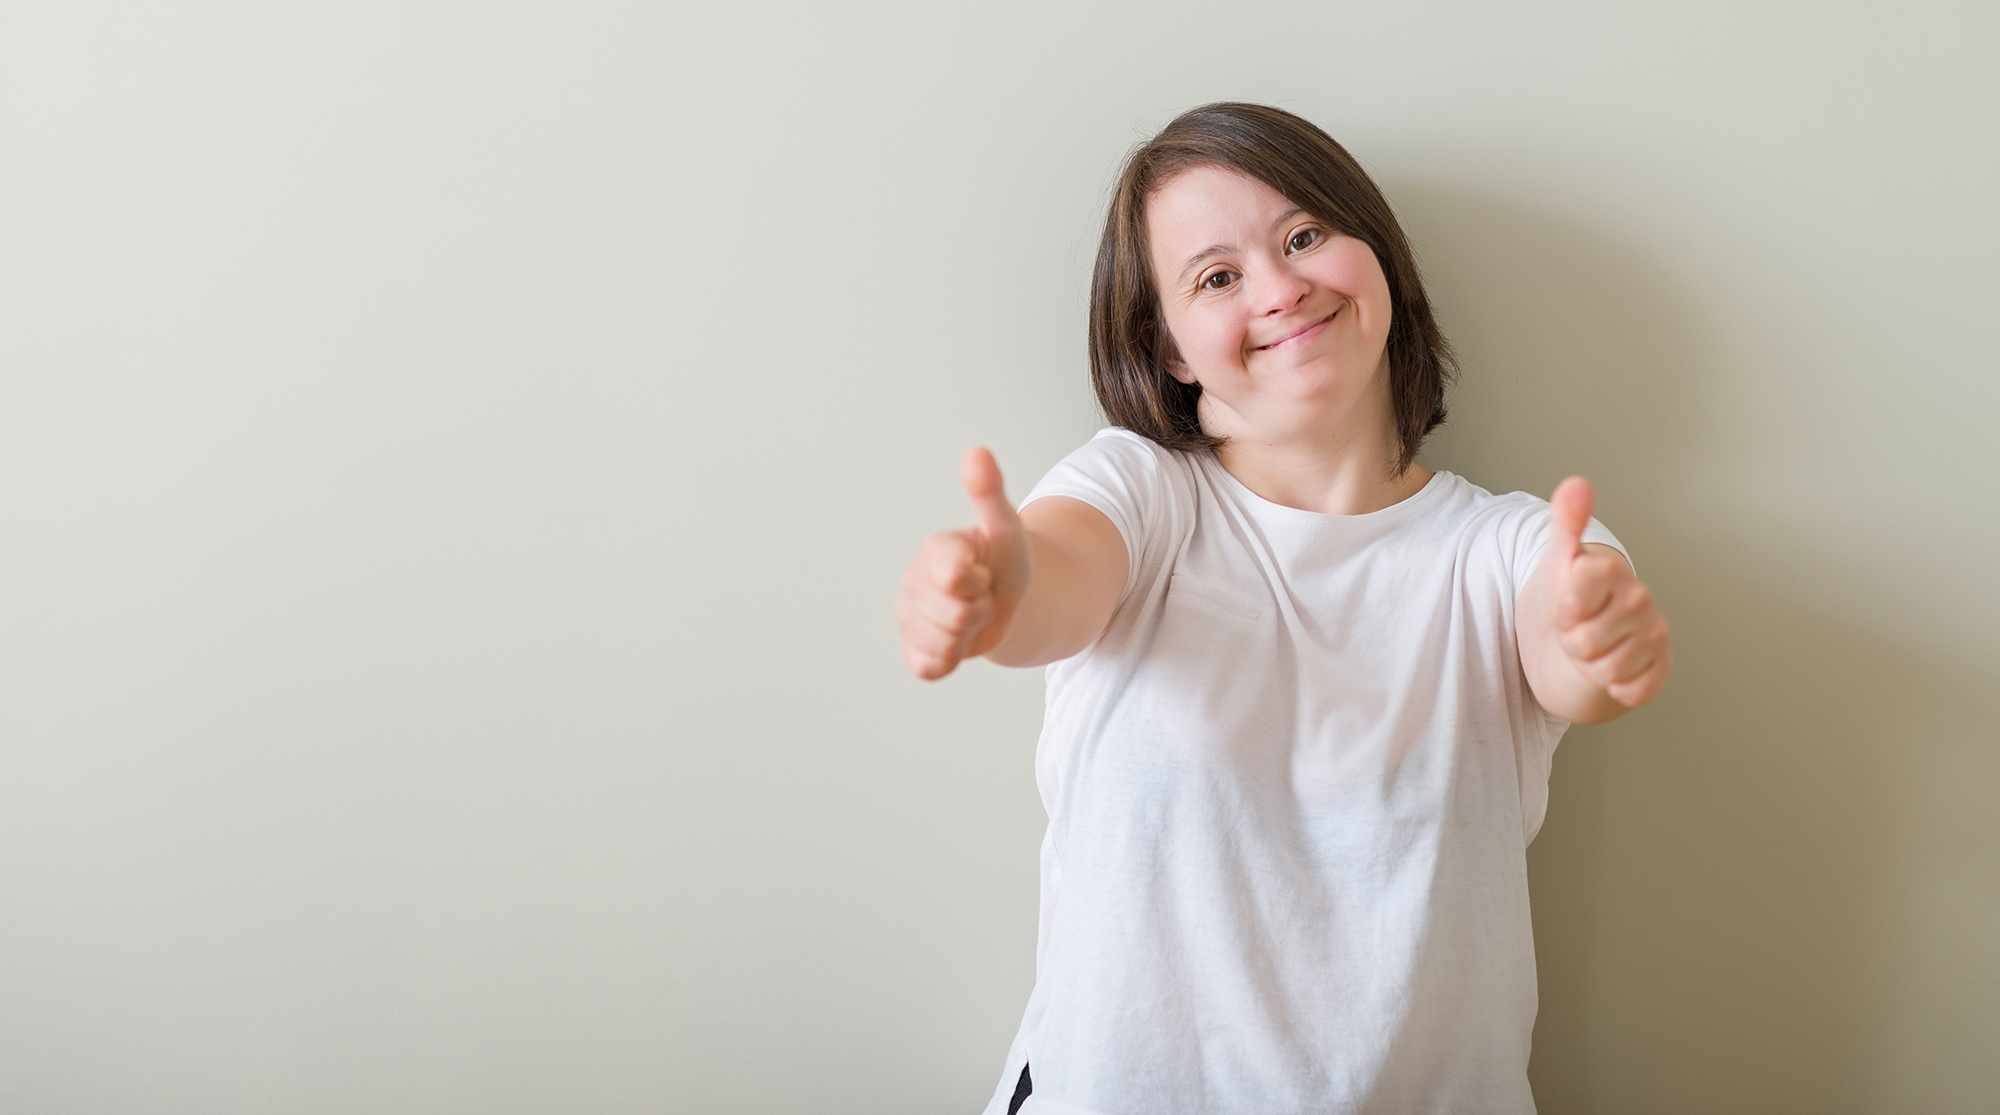 Down syndrome woman standing over wall approving doing positive gesture with hand, thumbs up smiling and happy for success. Looking at the camera, winner gesture.